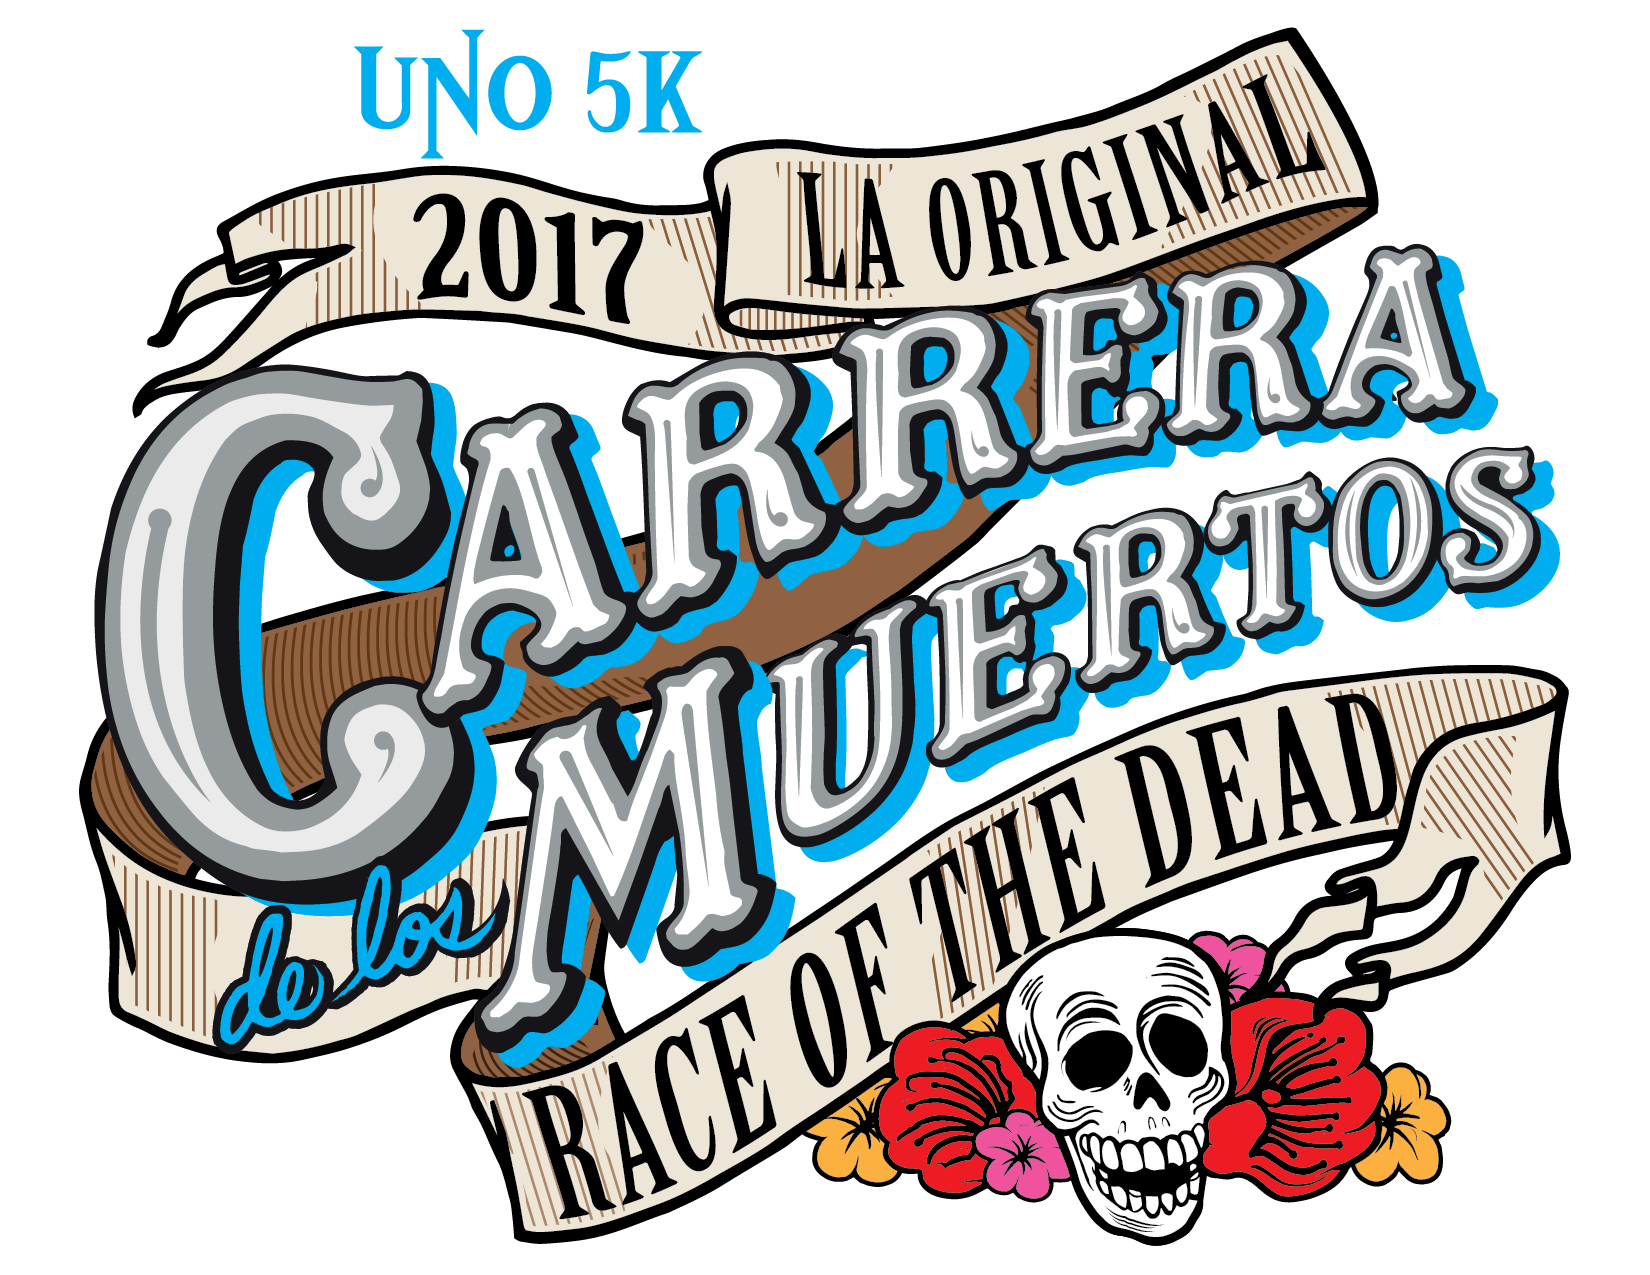 1650x1275 Uno Carrera De Los Muertosrace Of The Dead 5k